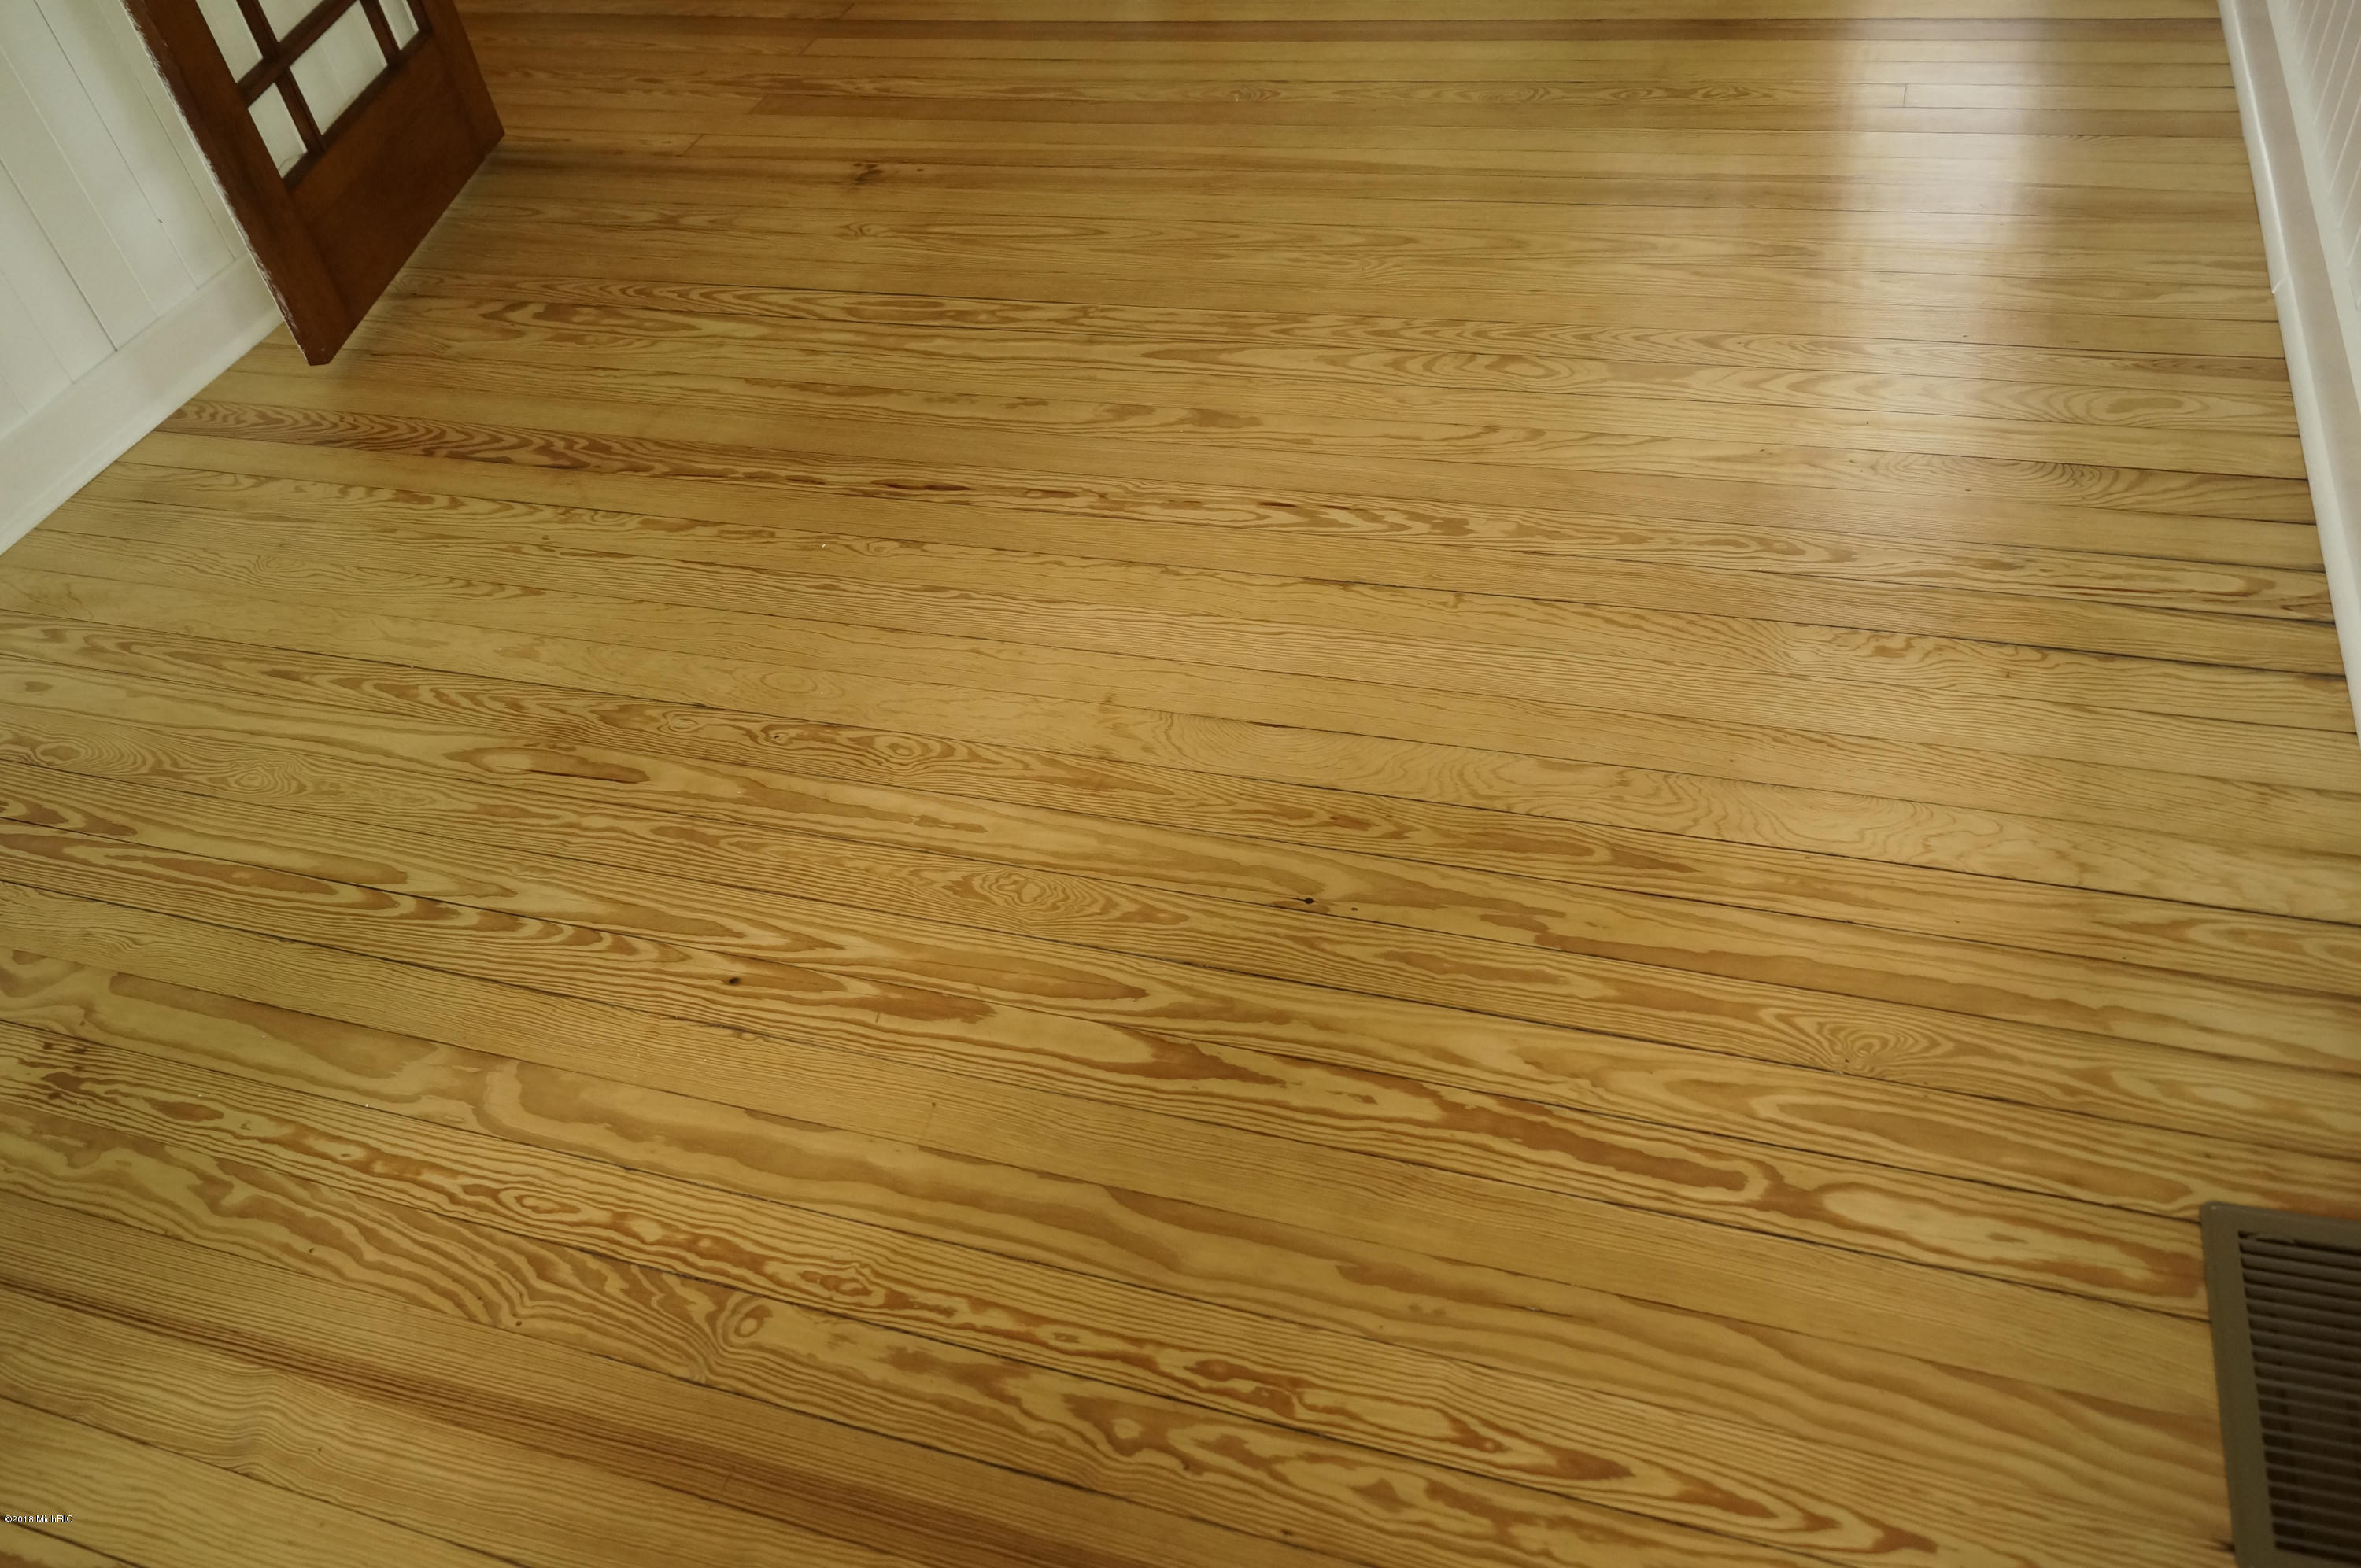 hardwood floor refinishing lincoln ne of 9313 montcalm avenue ne greenville mi 48838 log homes by the intended for property description back on market by no fault of its own buyer lost job this charming 1900 farmhouse is ready lovingly renovated over the last 6 years